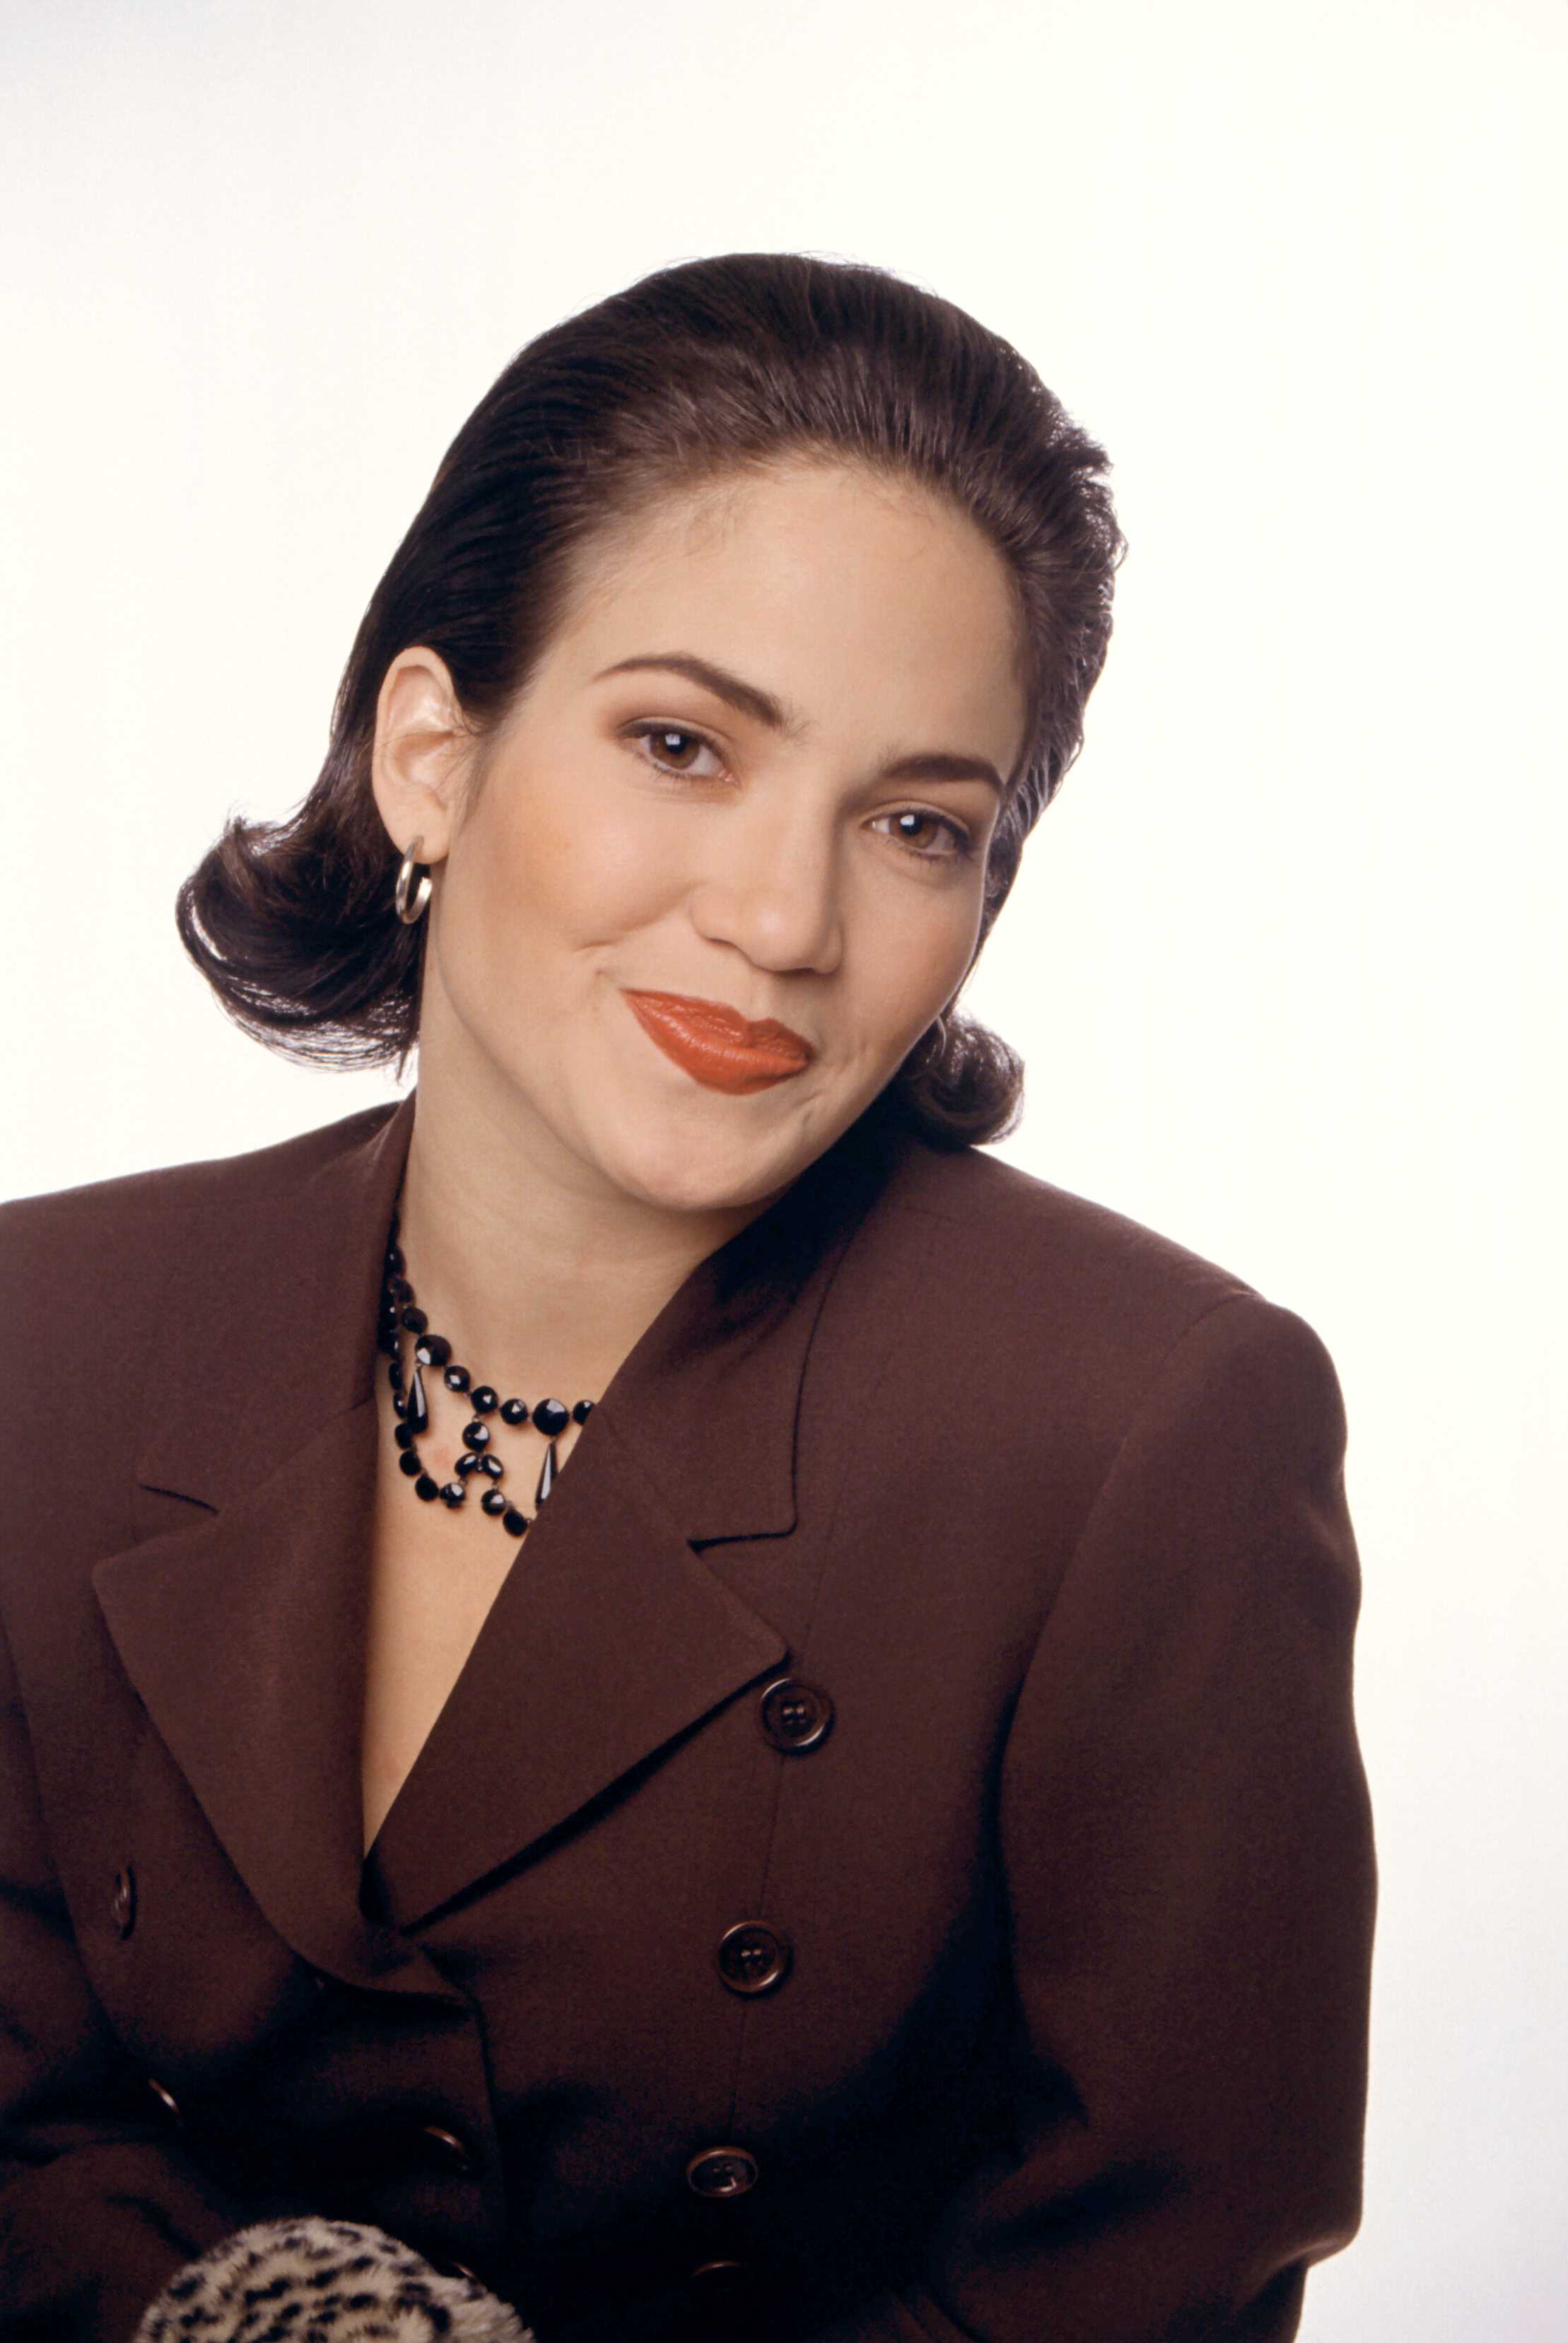 Actress and singer Jennifer Lopez poses for a portrait in Los Angeles circa 1992.